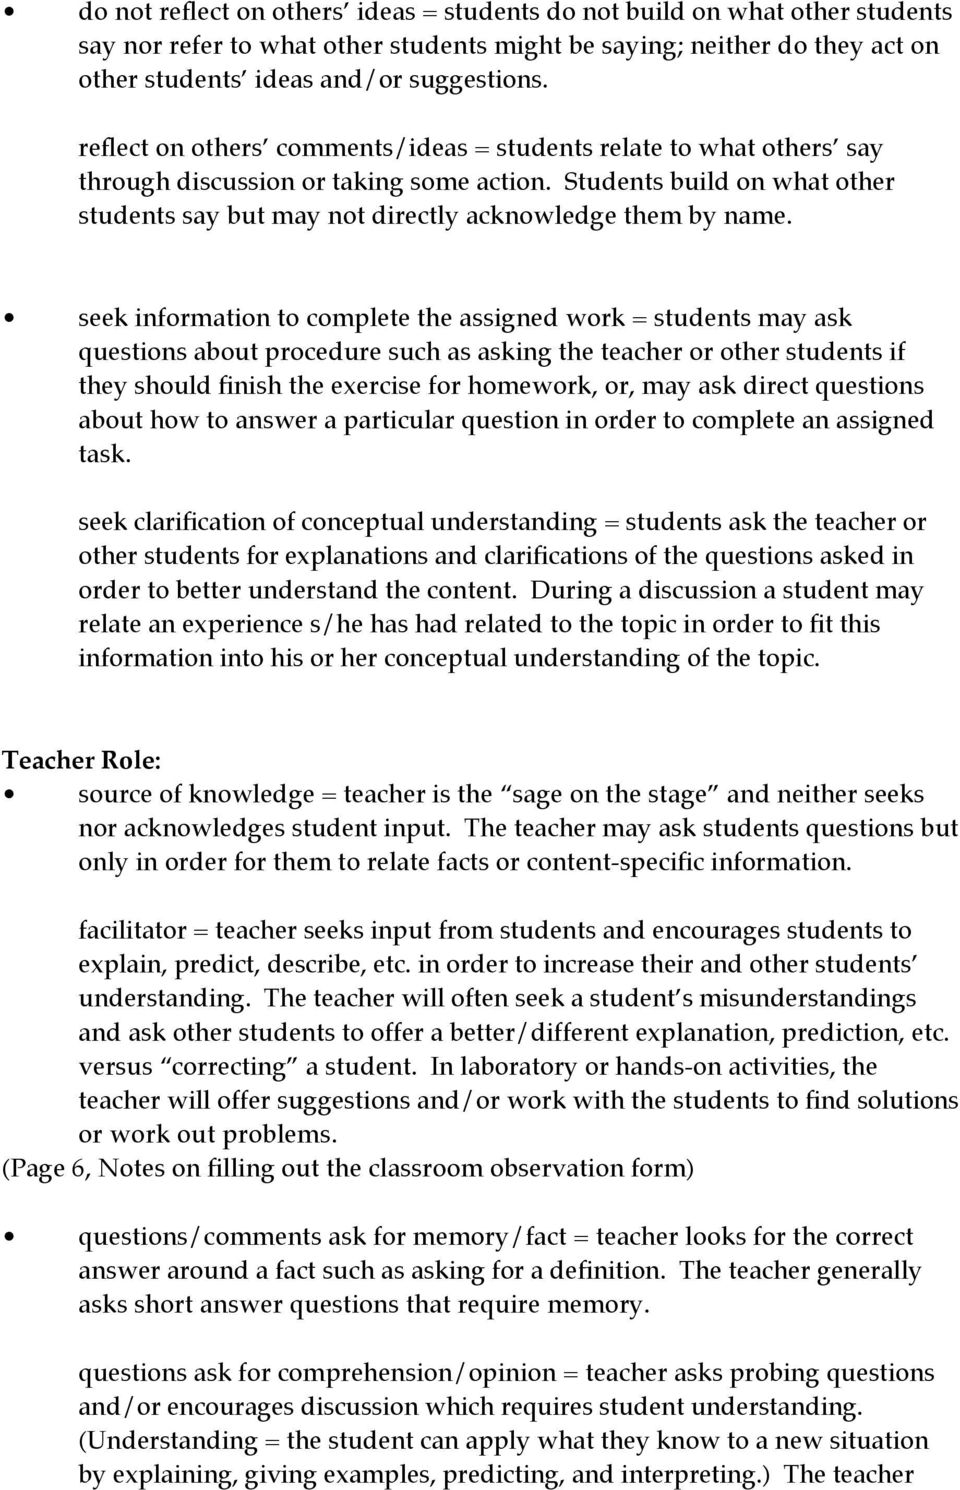 seek information to complete the assigned work = students may ask questions about procedure such as asking the teacher or other students if they should finish the exercise for homework, or, may ask